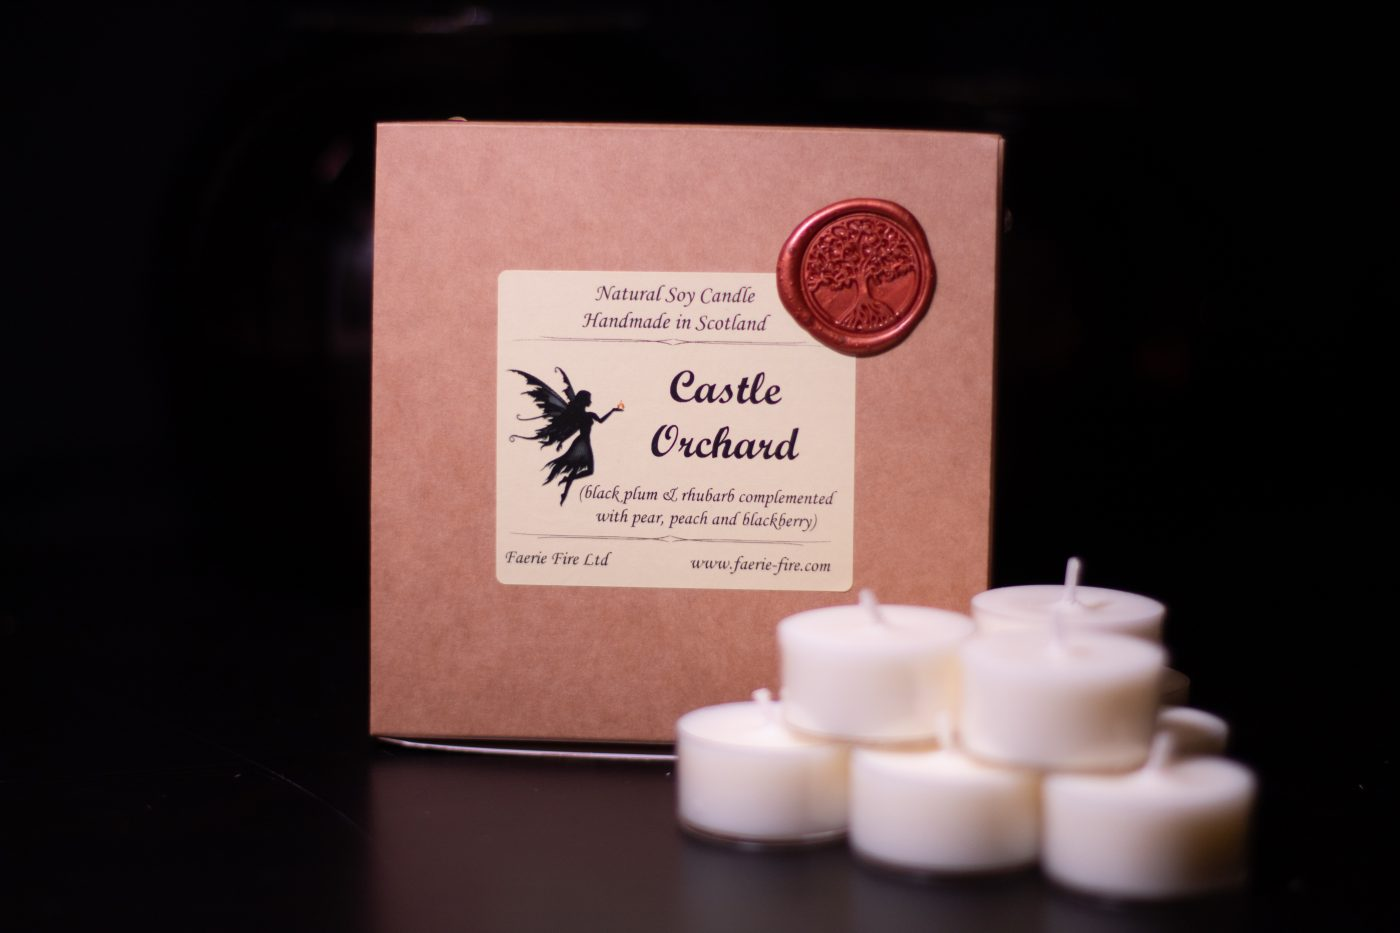 Castle Orchard Soy Wax Tealights scaled